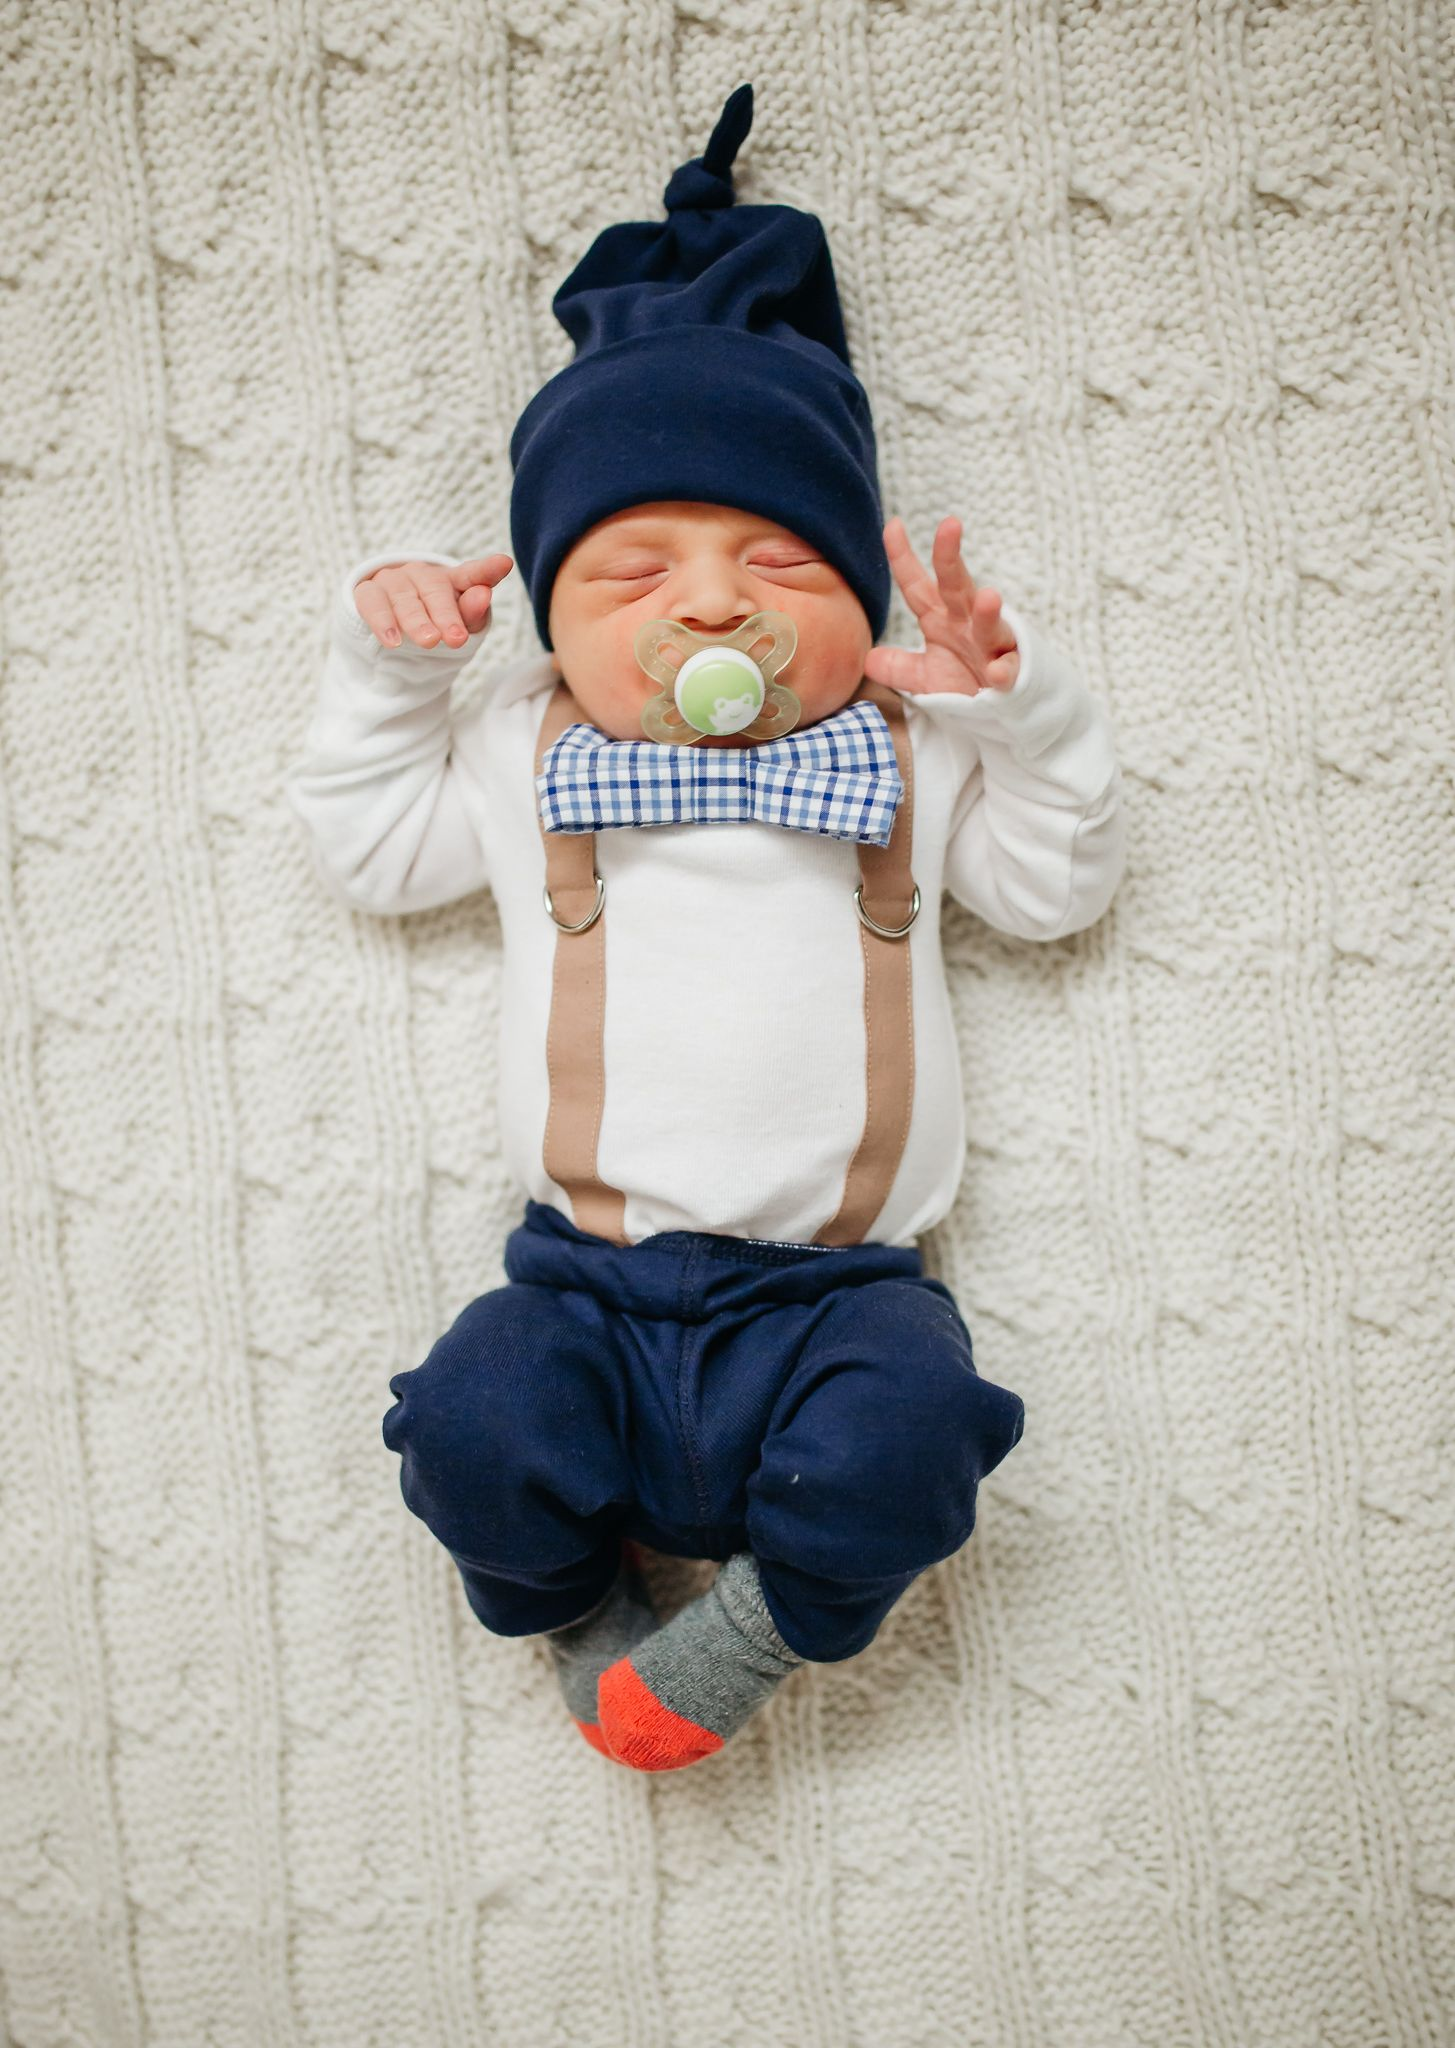 Newborn Boy Outfits For Pictures : newborn, outfits, pictures, Classic, Coming, Outfit, Mocha, Newborn, Clothes,, Fashion